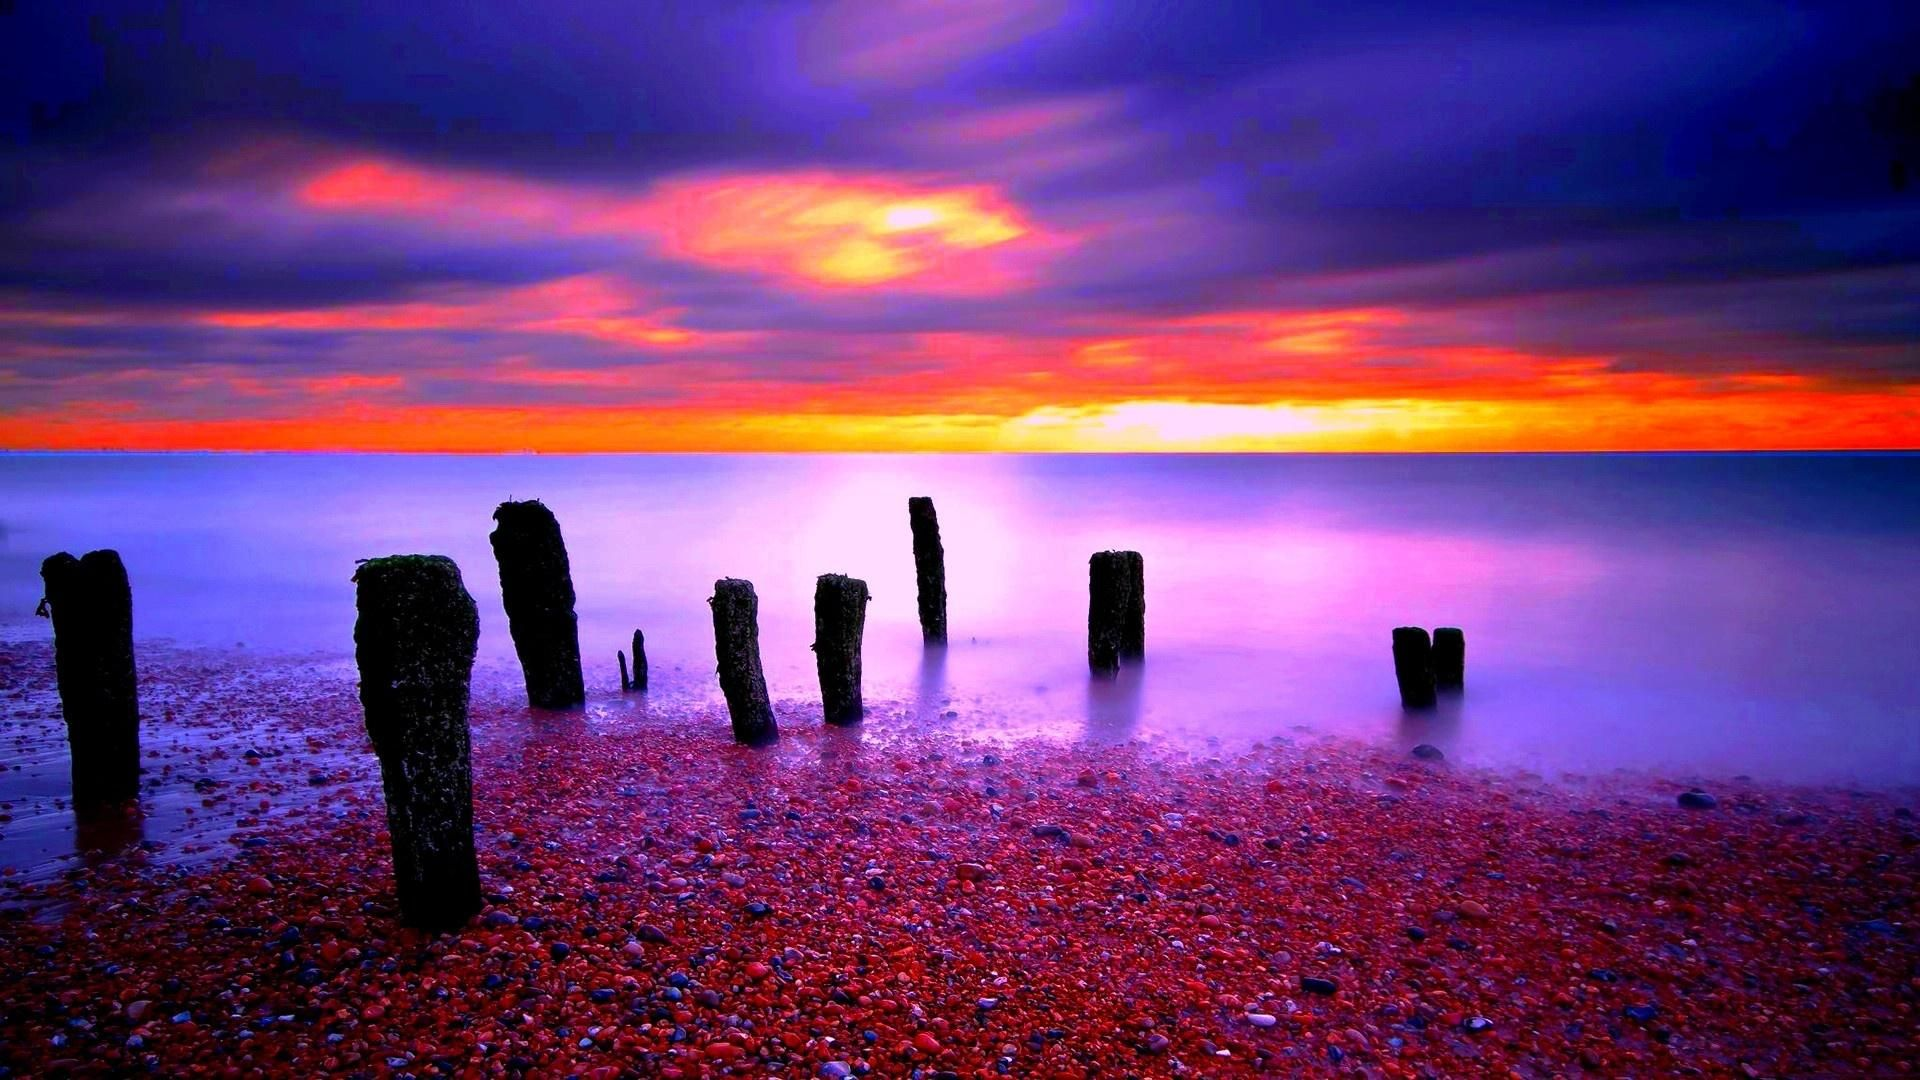 widescreen x the most colorful sunset on nature wallpaper high